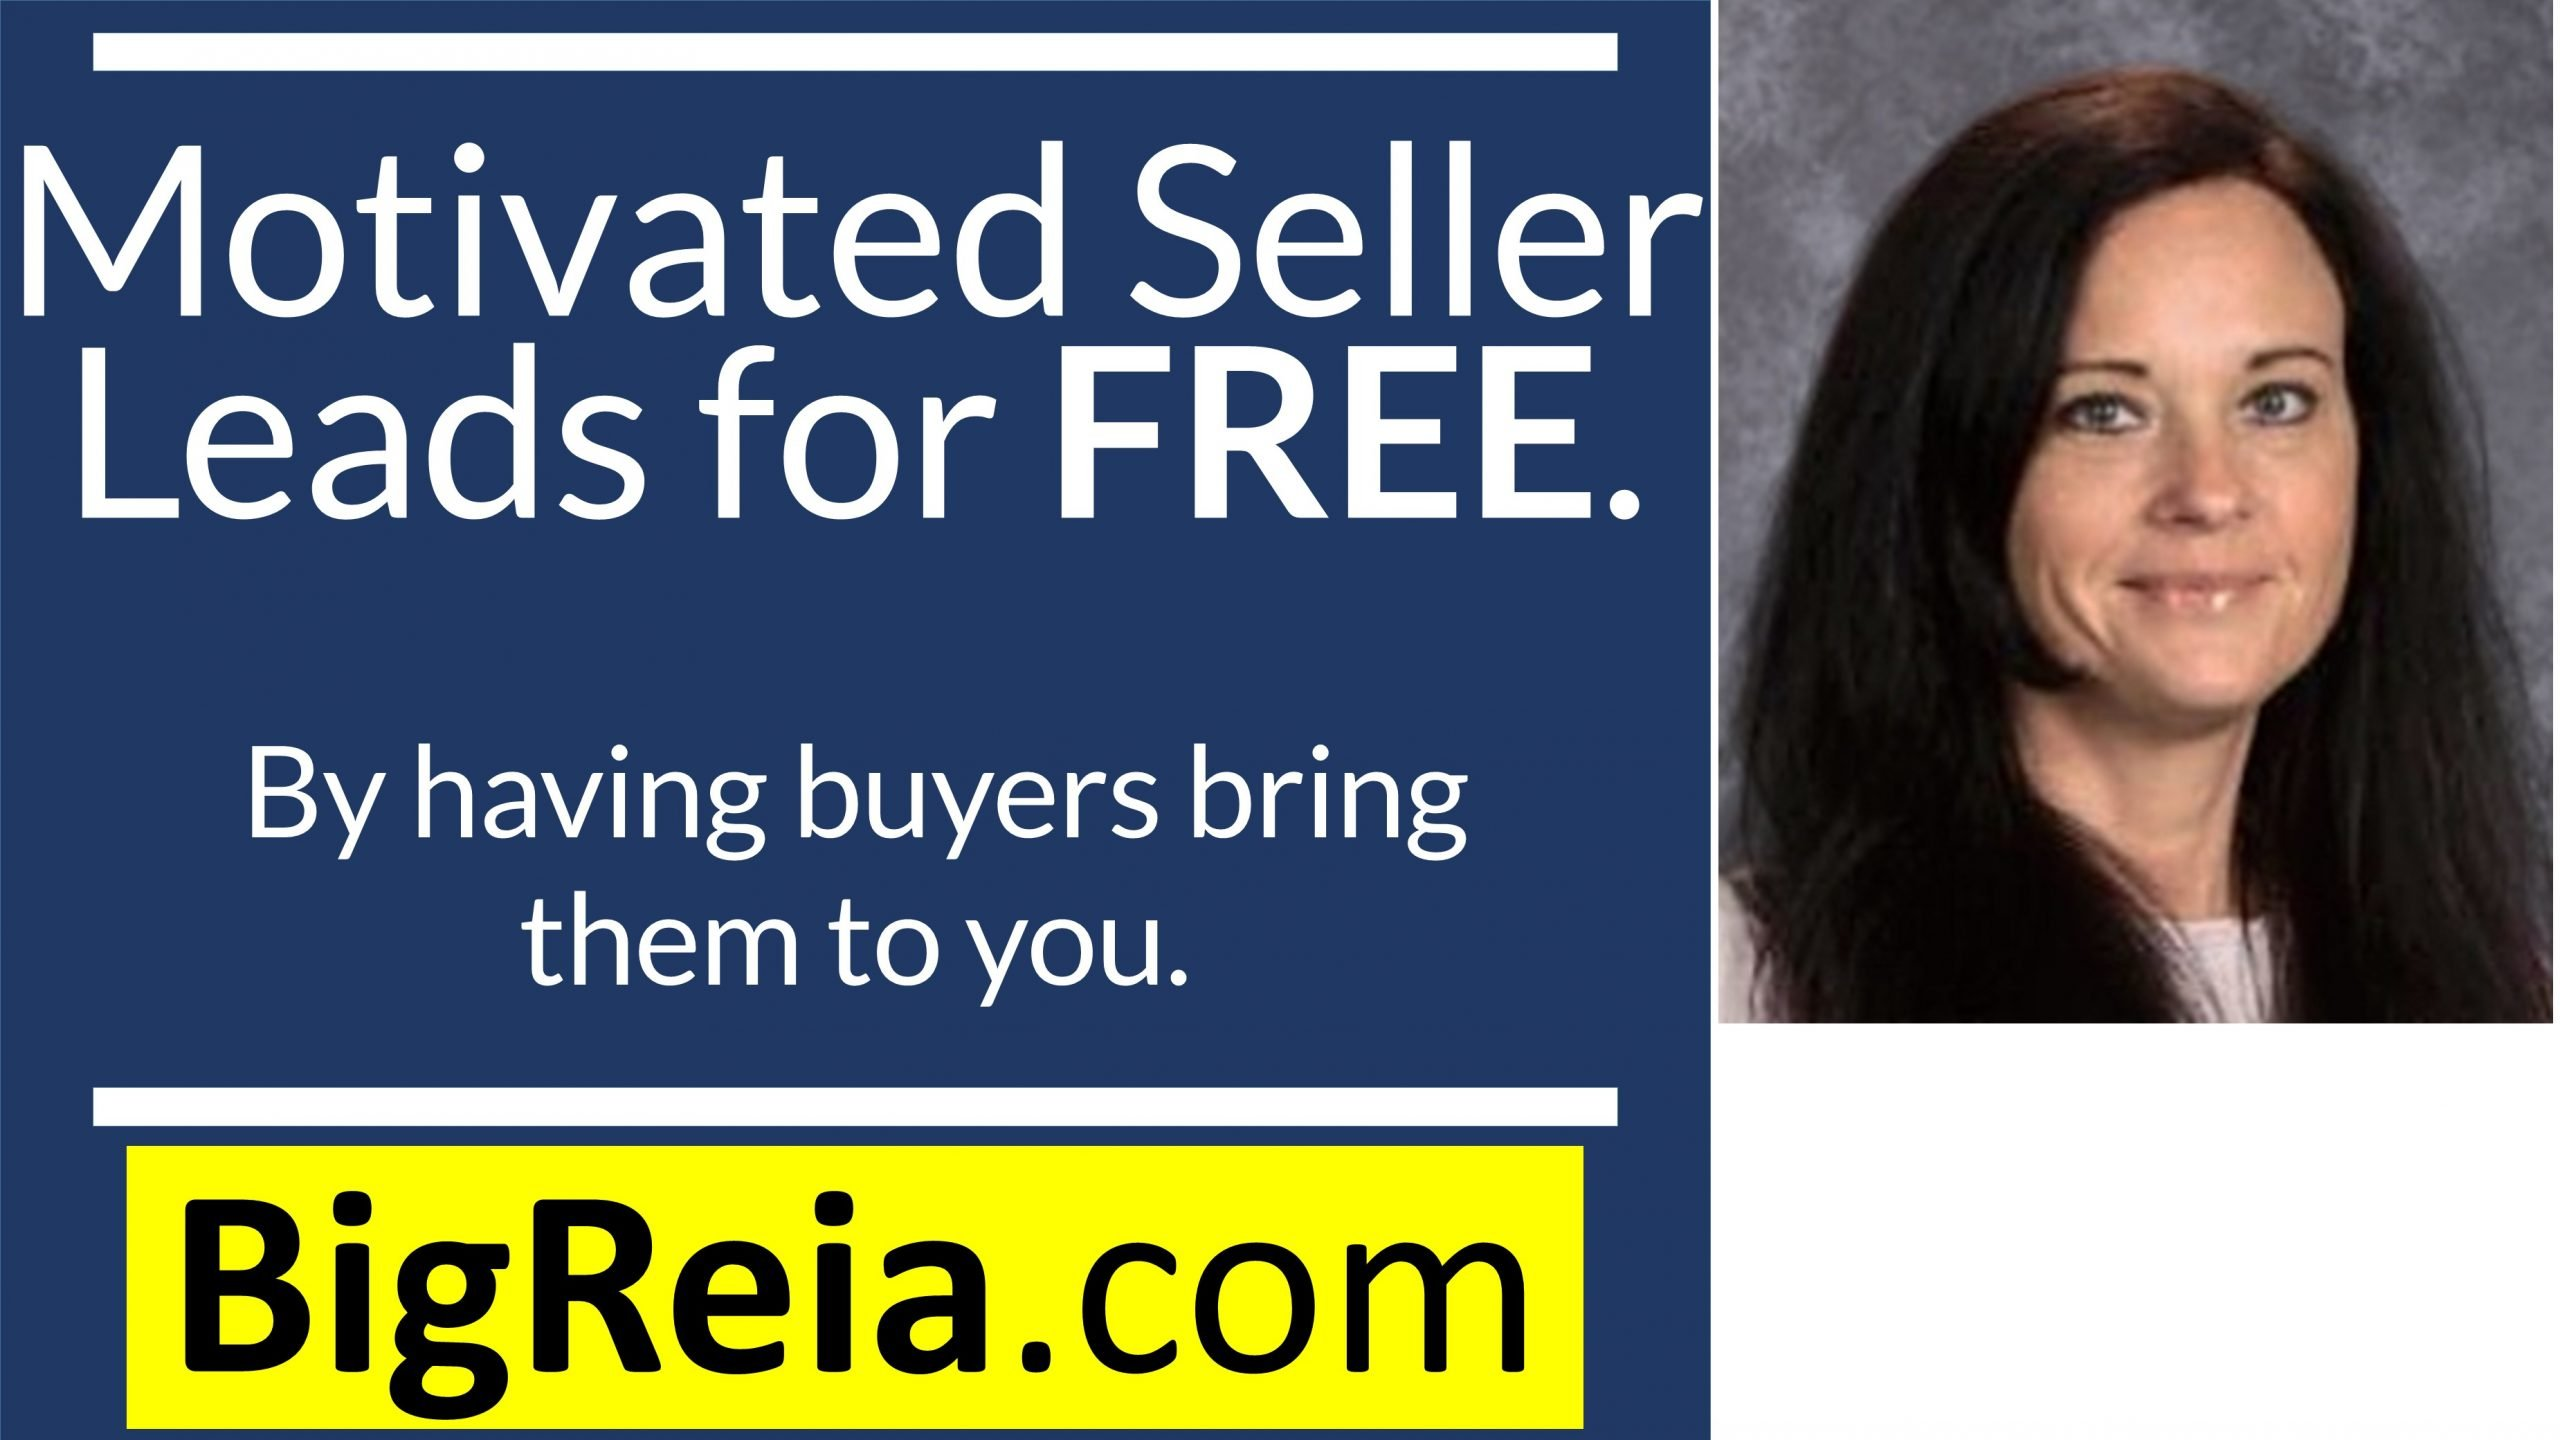 Get motivated seller leads for FREE from buyers finding and bringing them to you, make $270 per call?